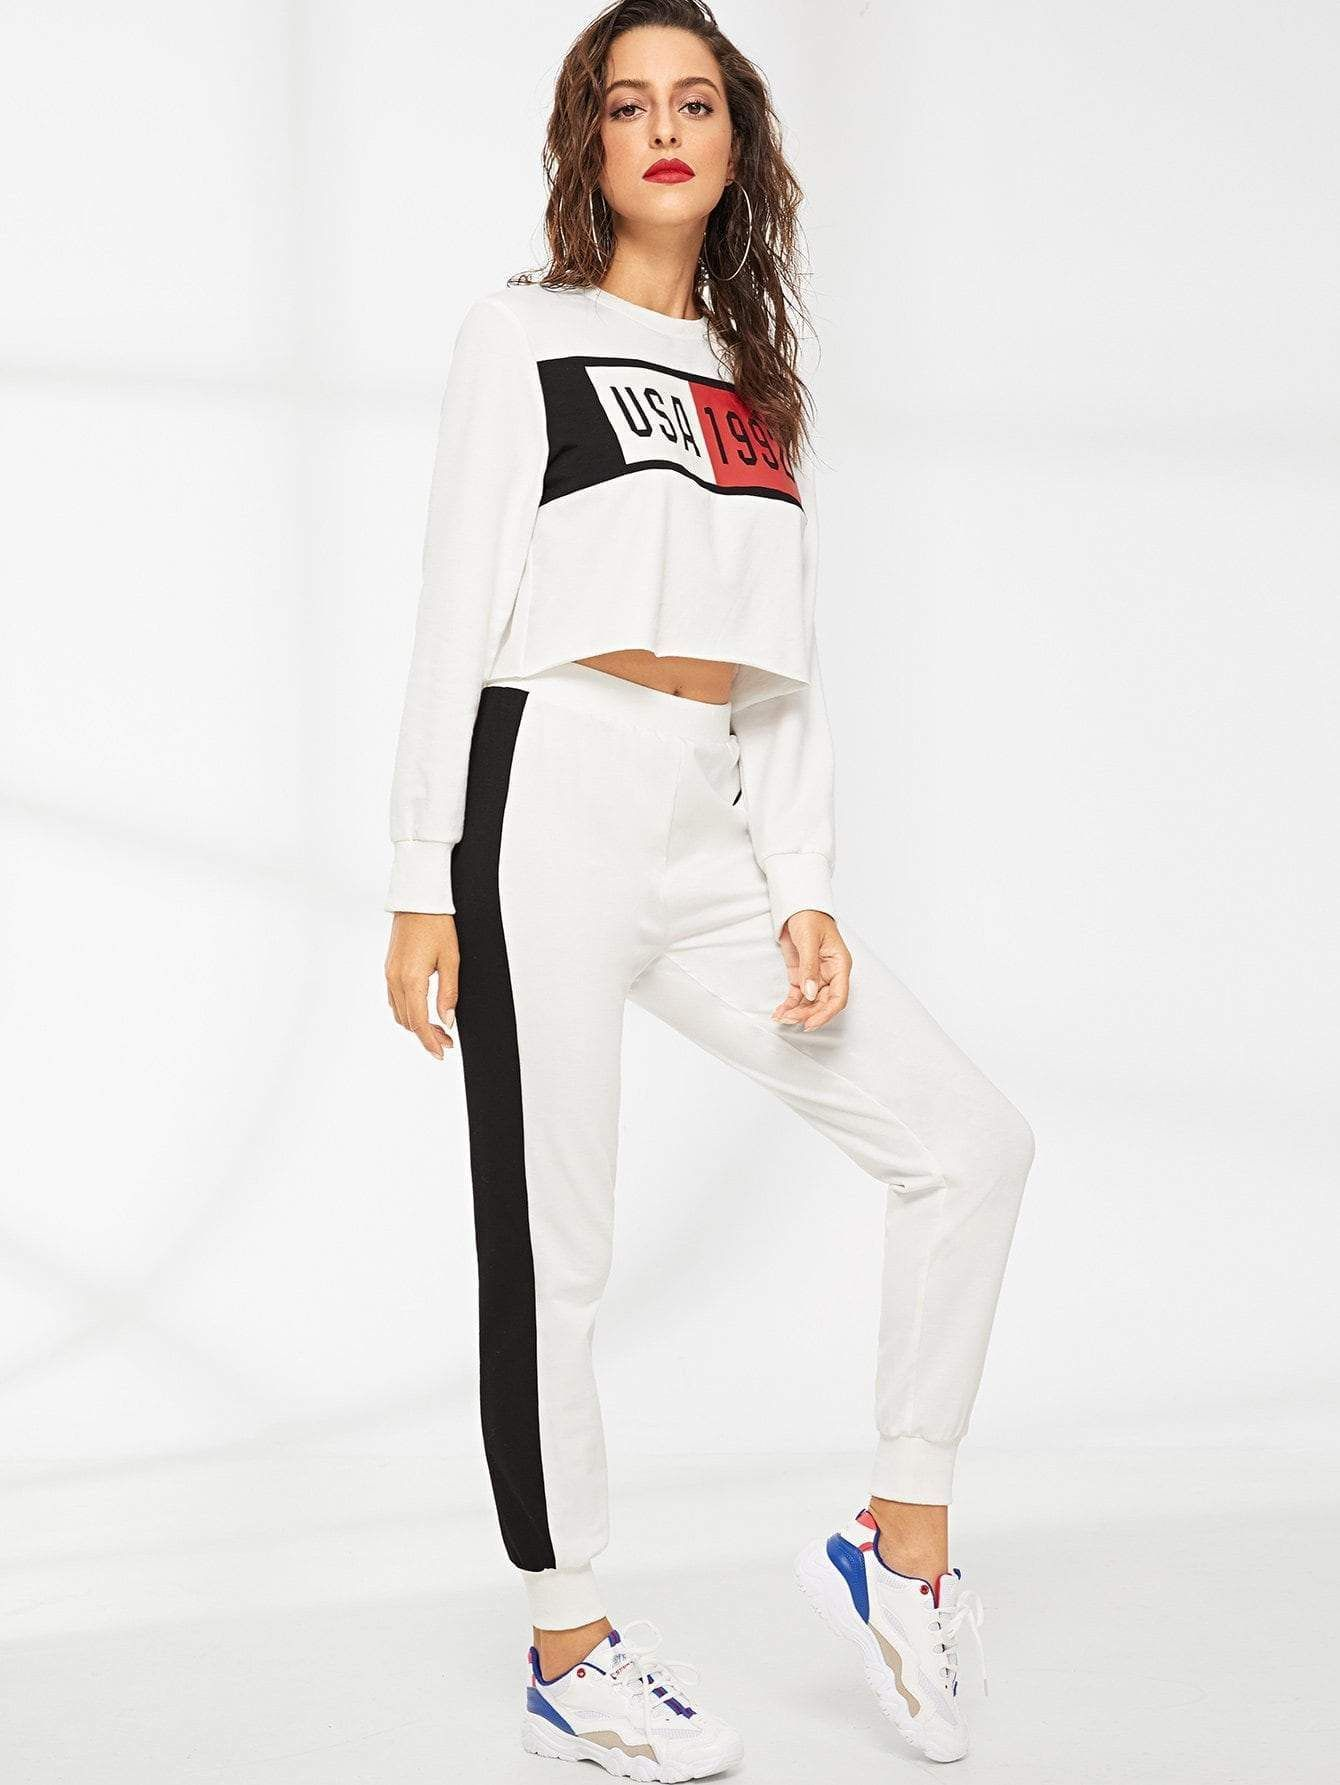 83389a81ddcf Mixed Print Crop Top & Sweatpants Set in 2019 | Gym Style ...